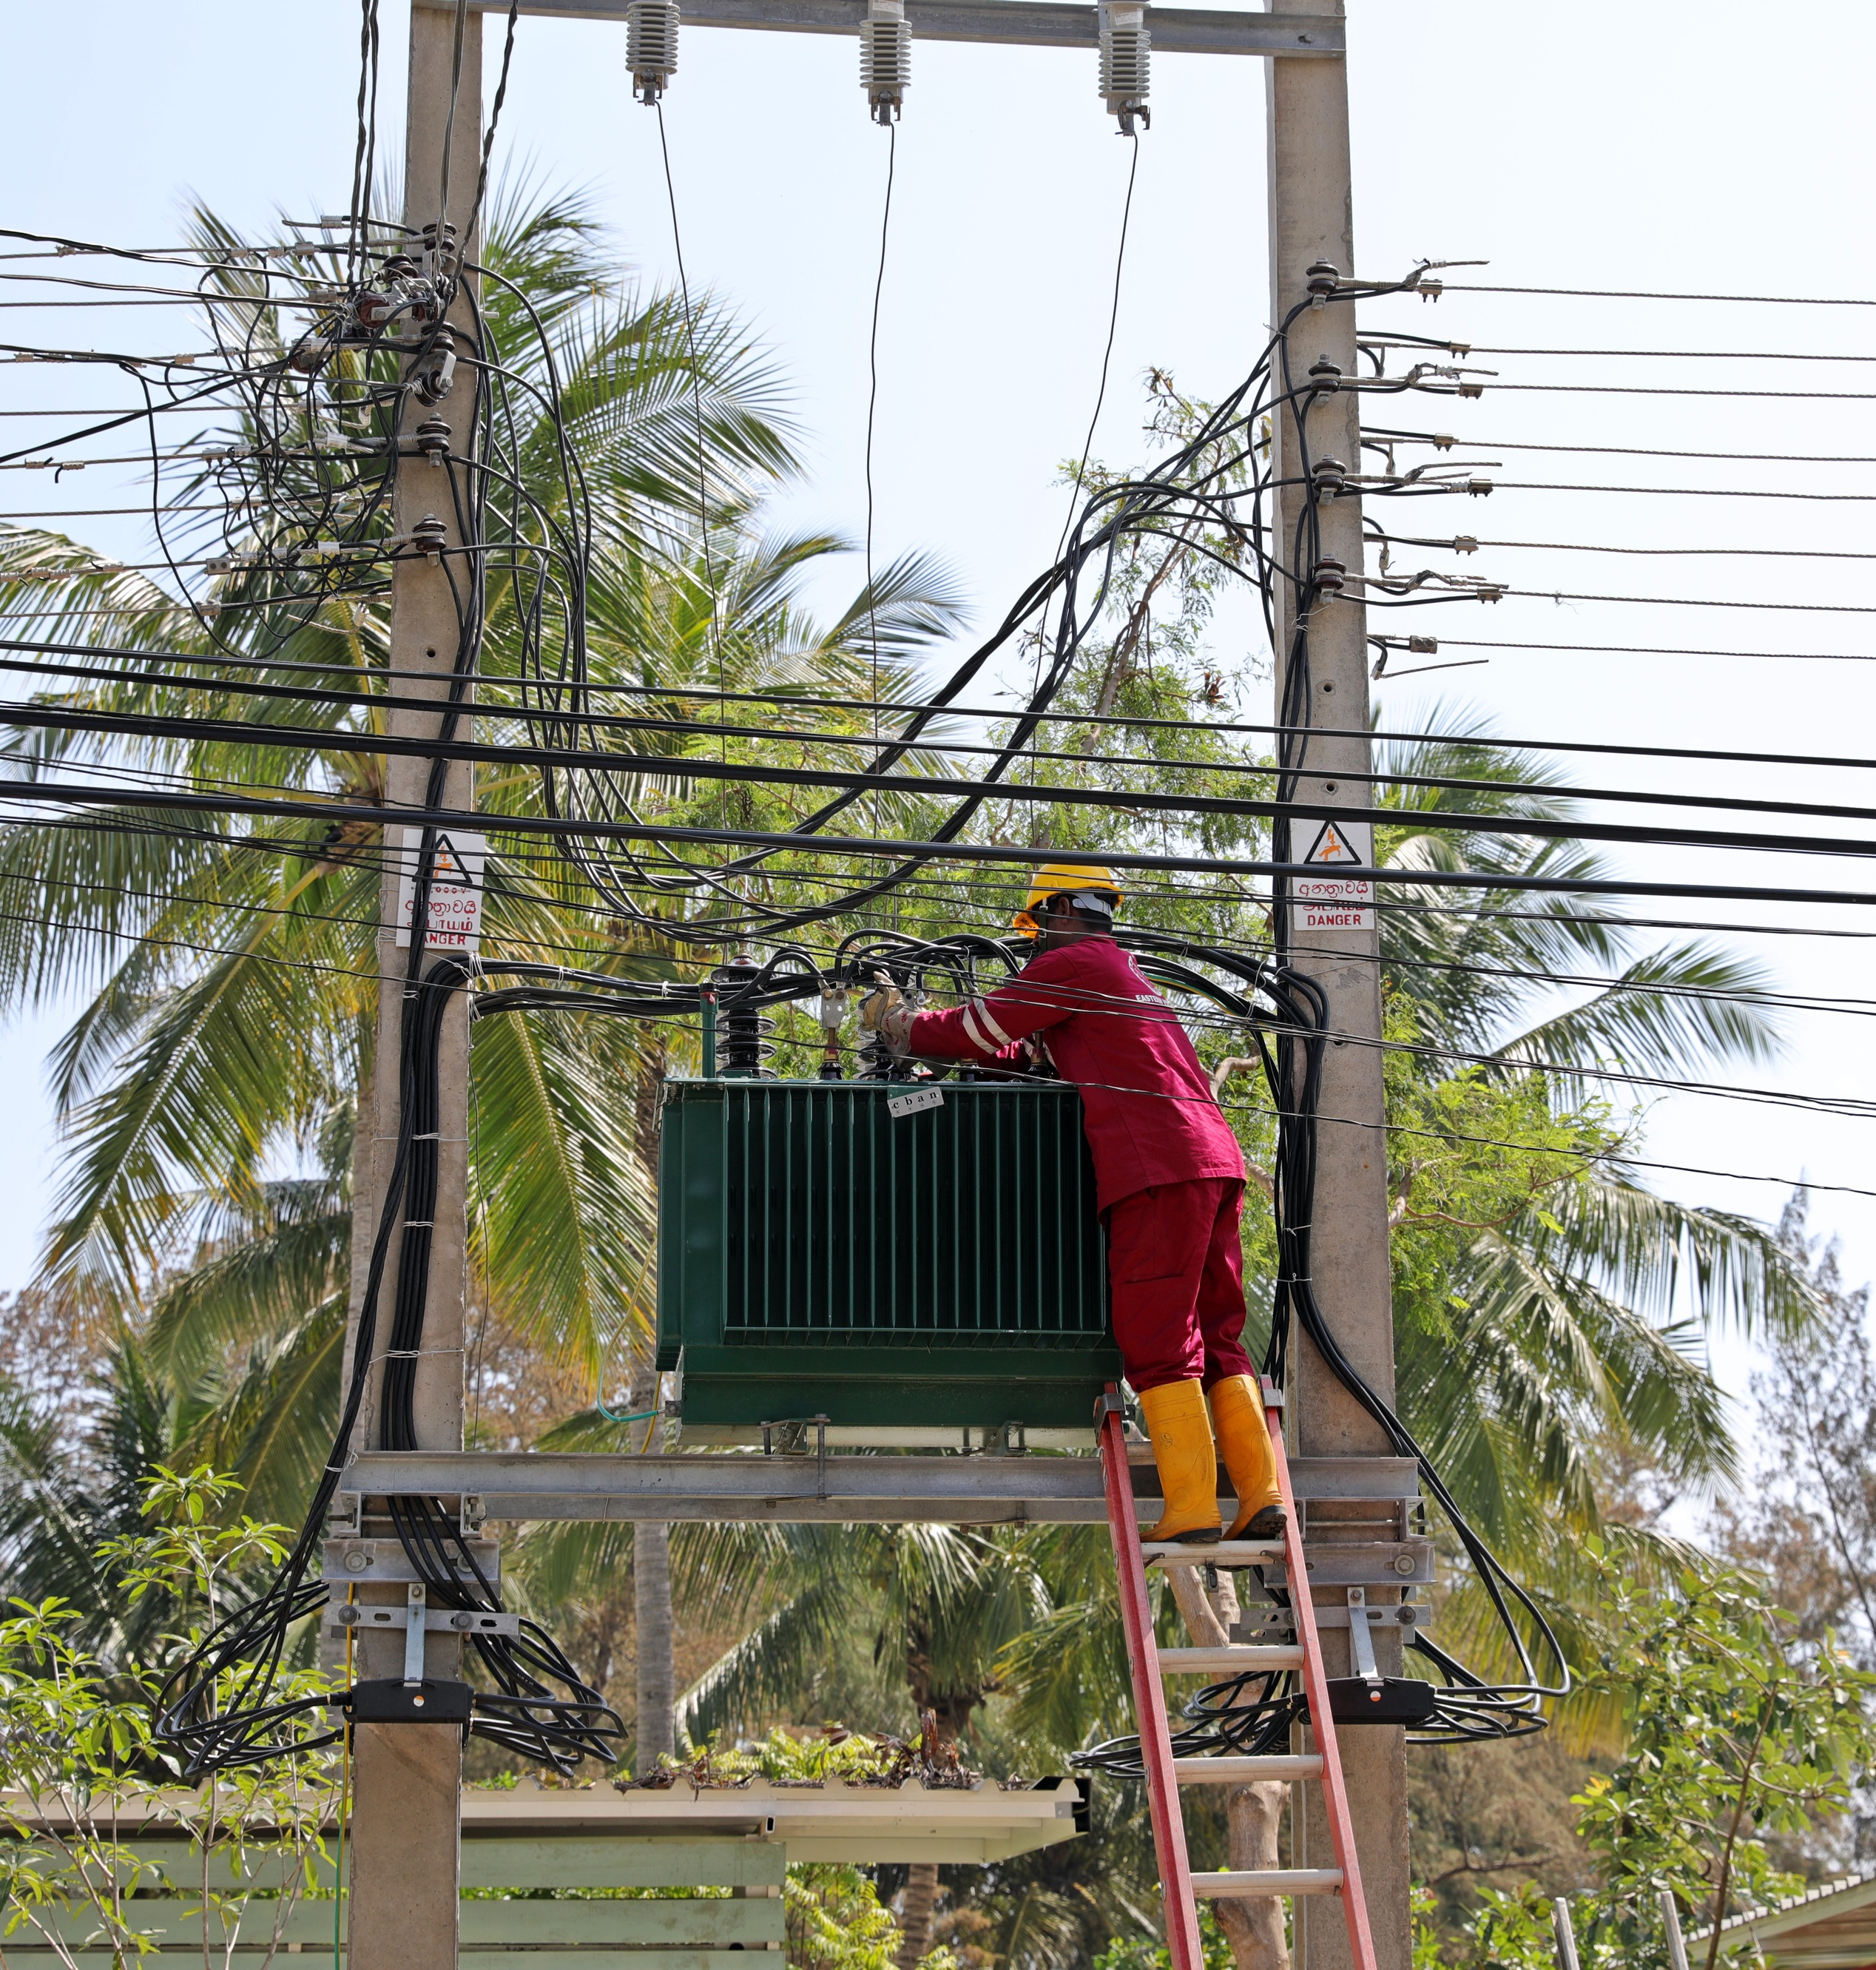 Working on a live power transformer, Arugam Bay